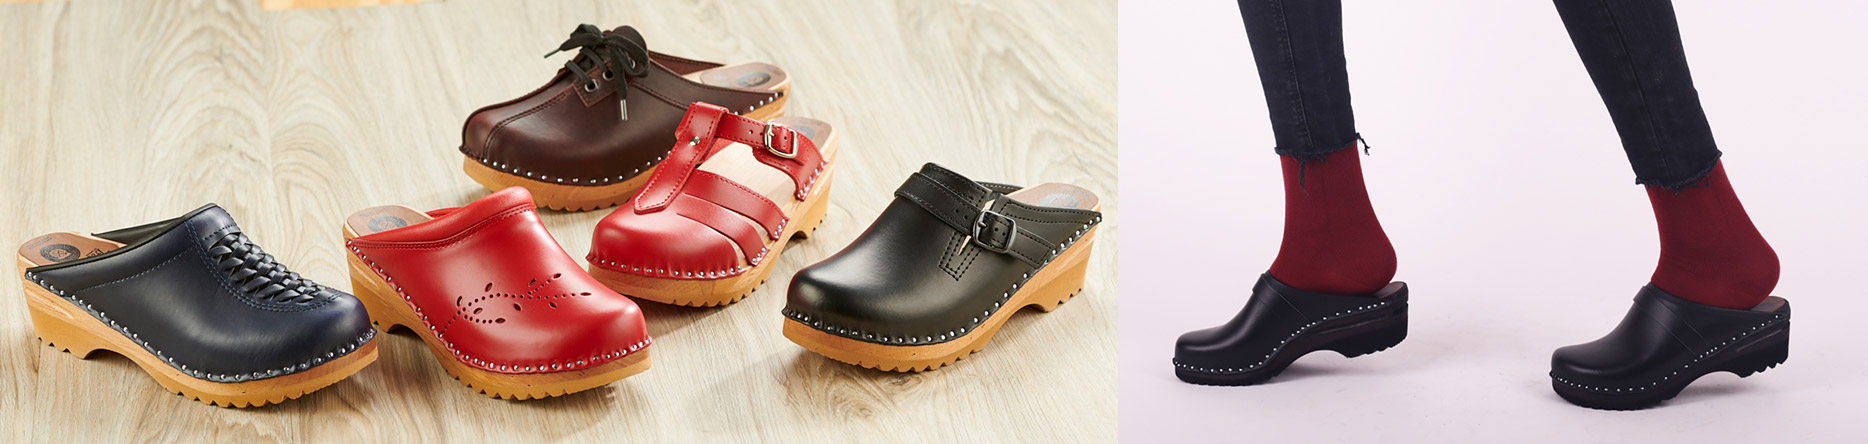 Troentorp-Clogs-Pop-Up-Event